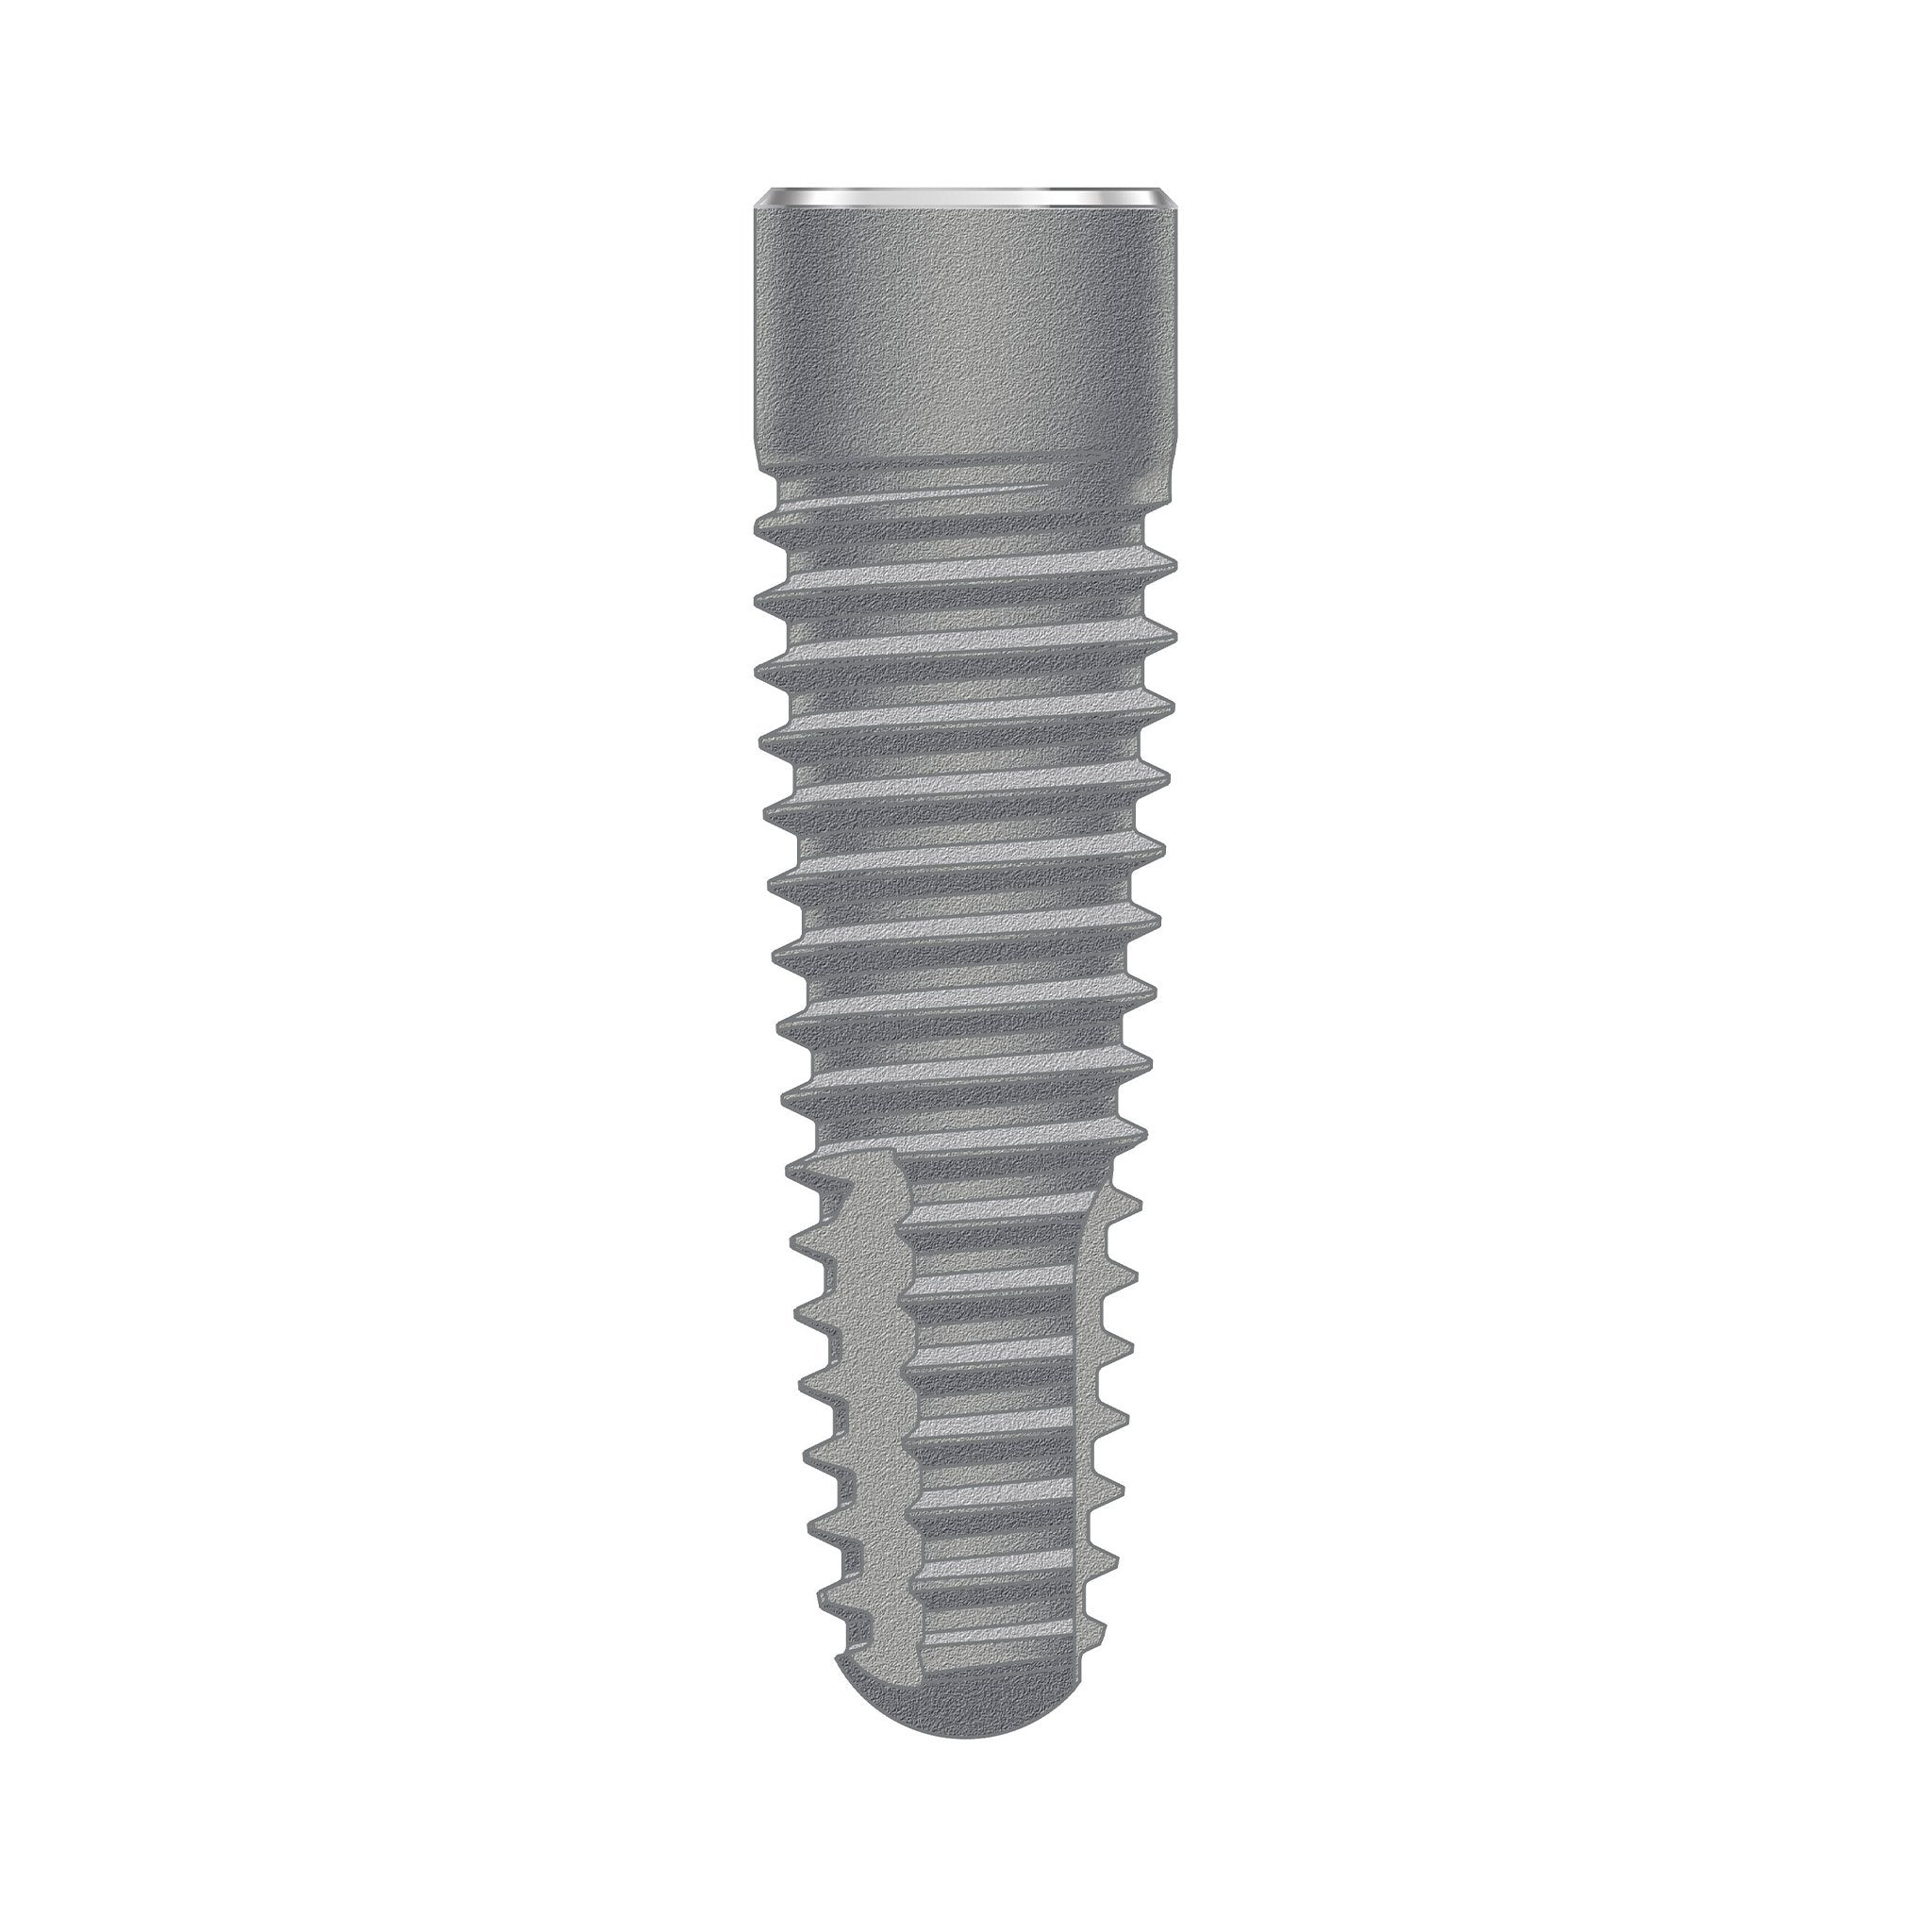 PrimaConnex® Tapered Implant SD Ø 3.5 x 13mm | K3